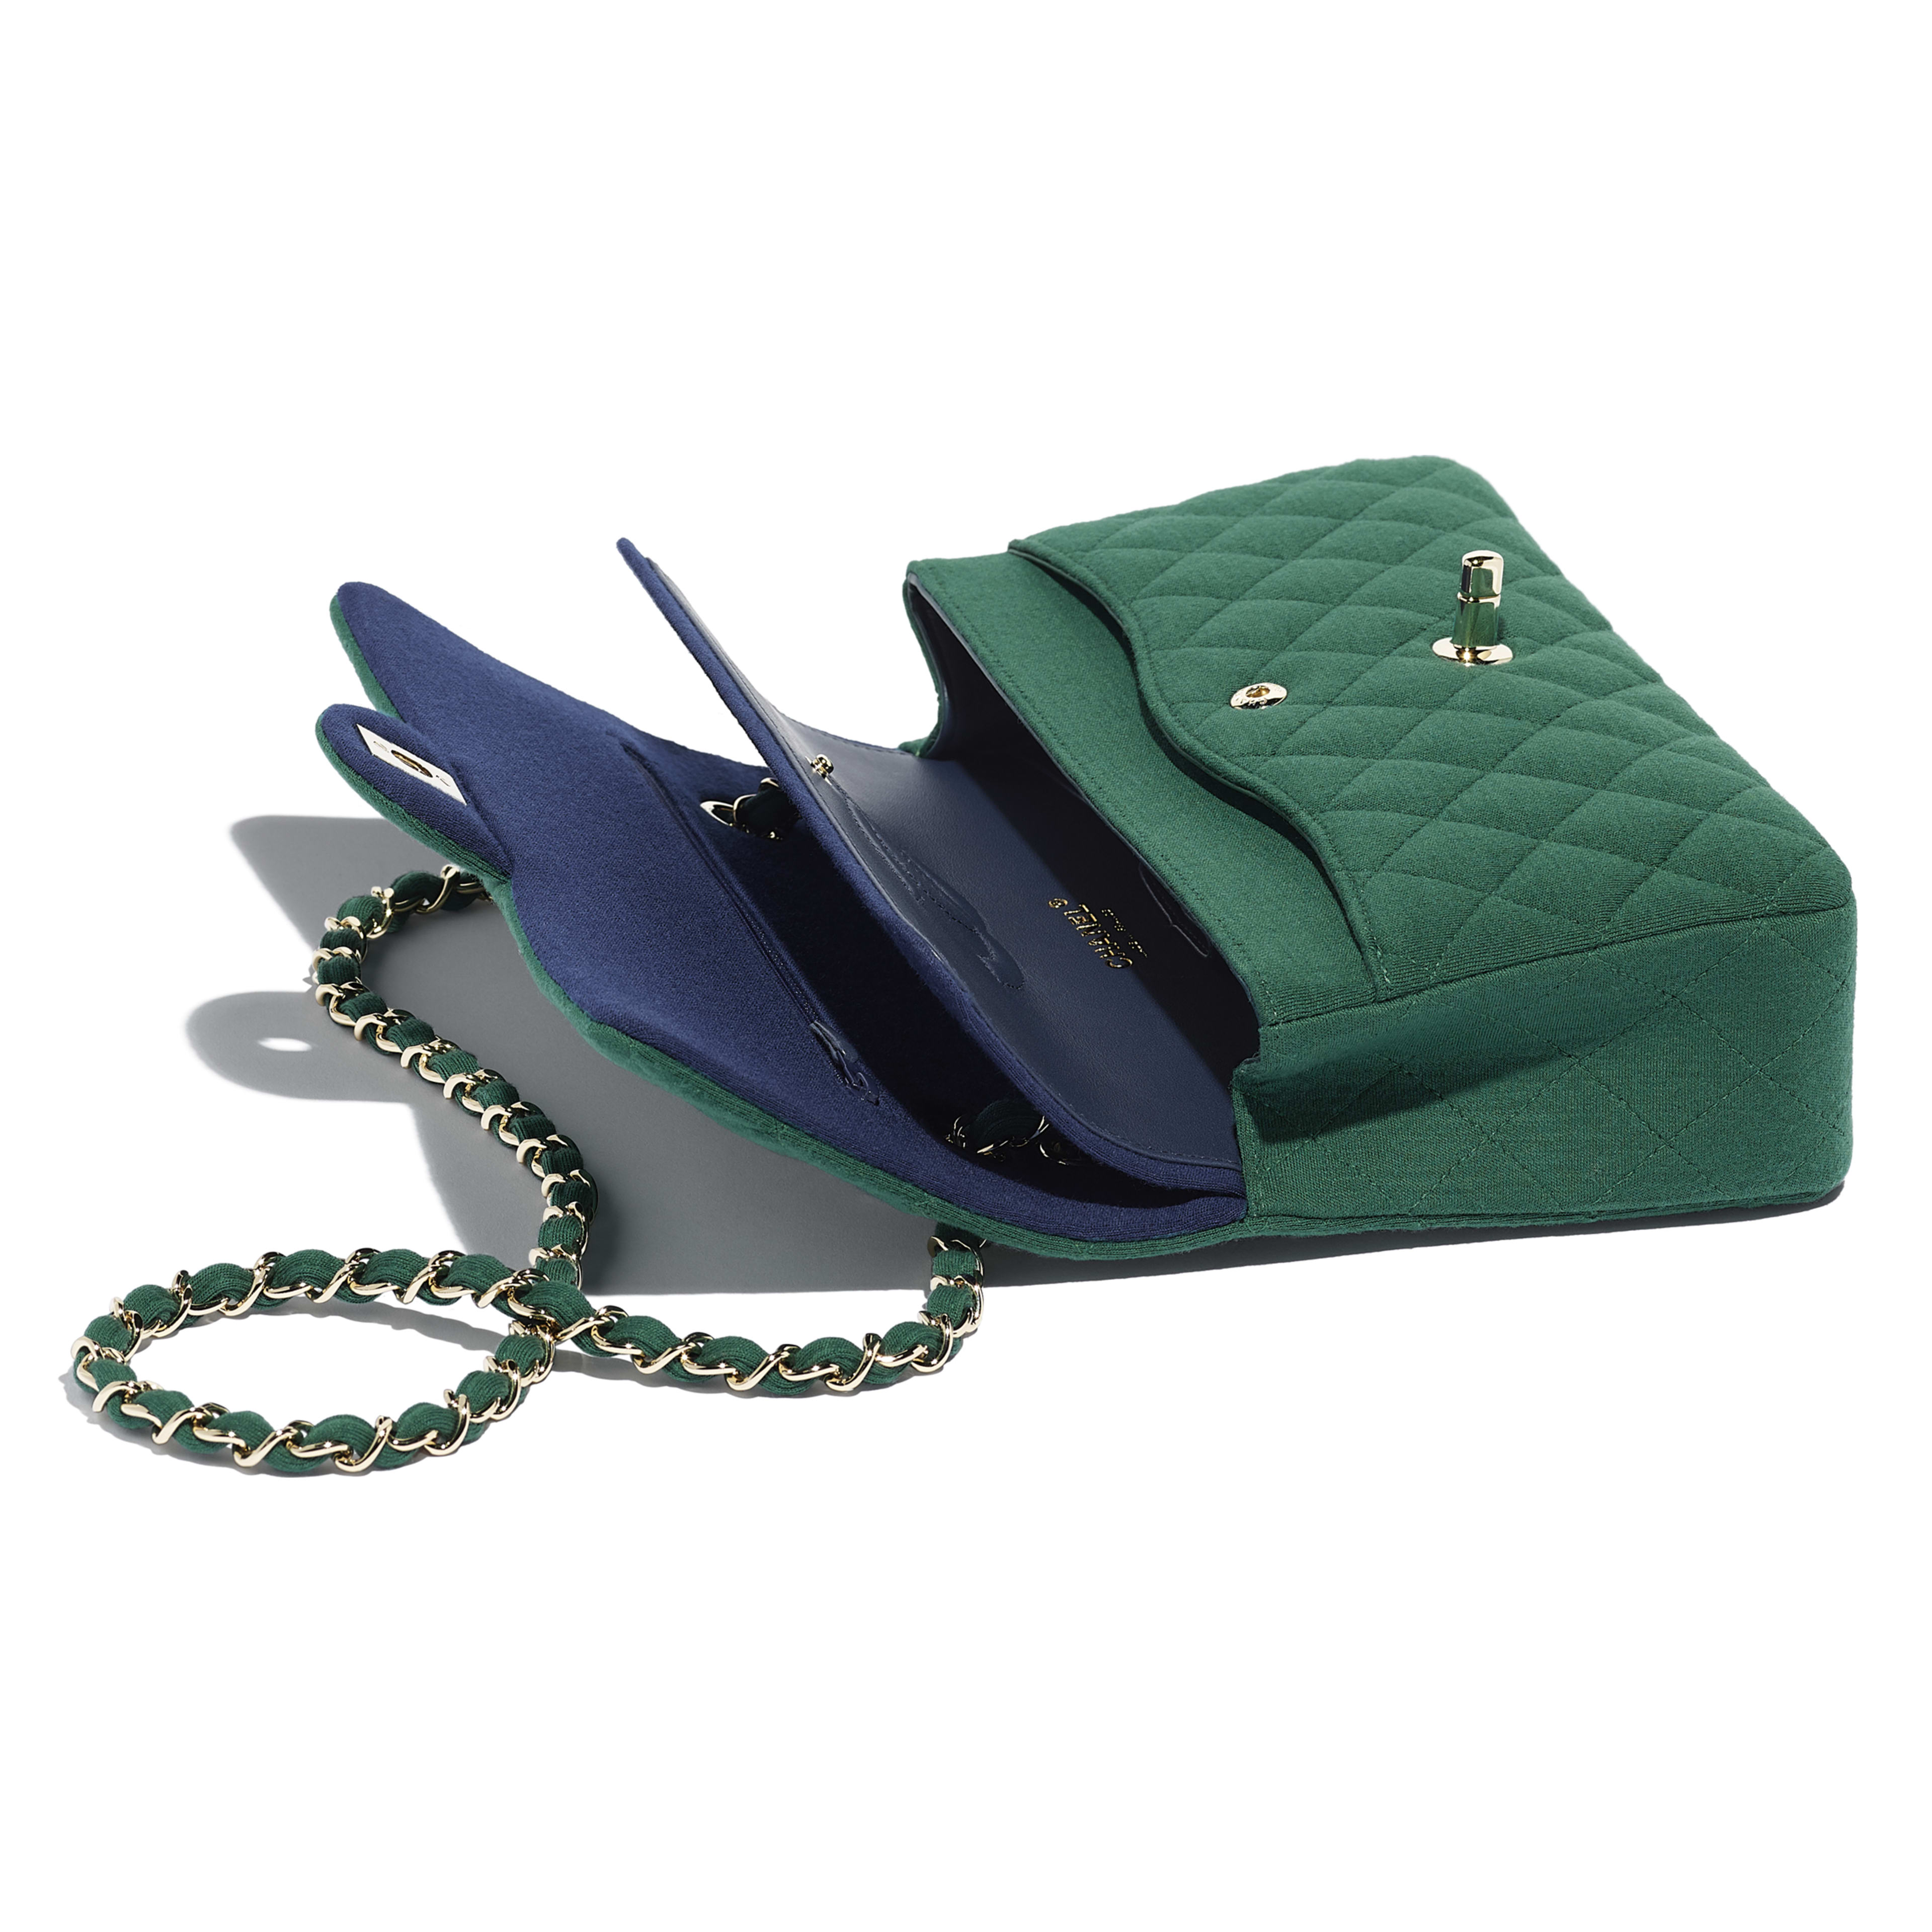 Classic Handbag - Green - Jersey & Gold-Tone Metal - Other view - see full sized version